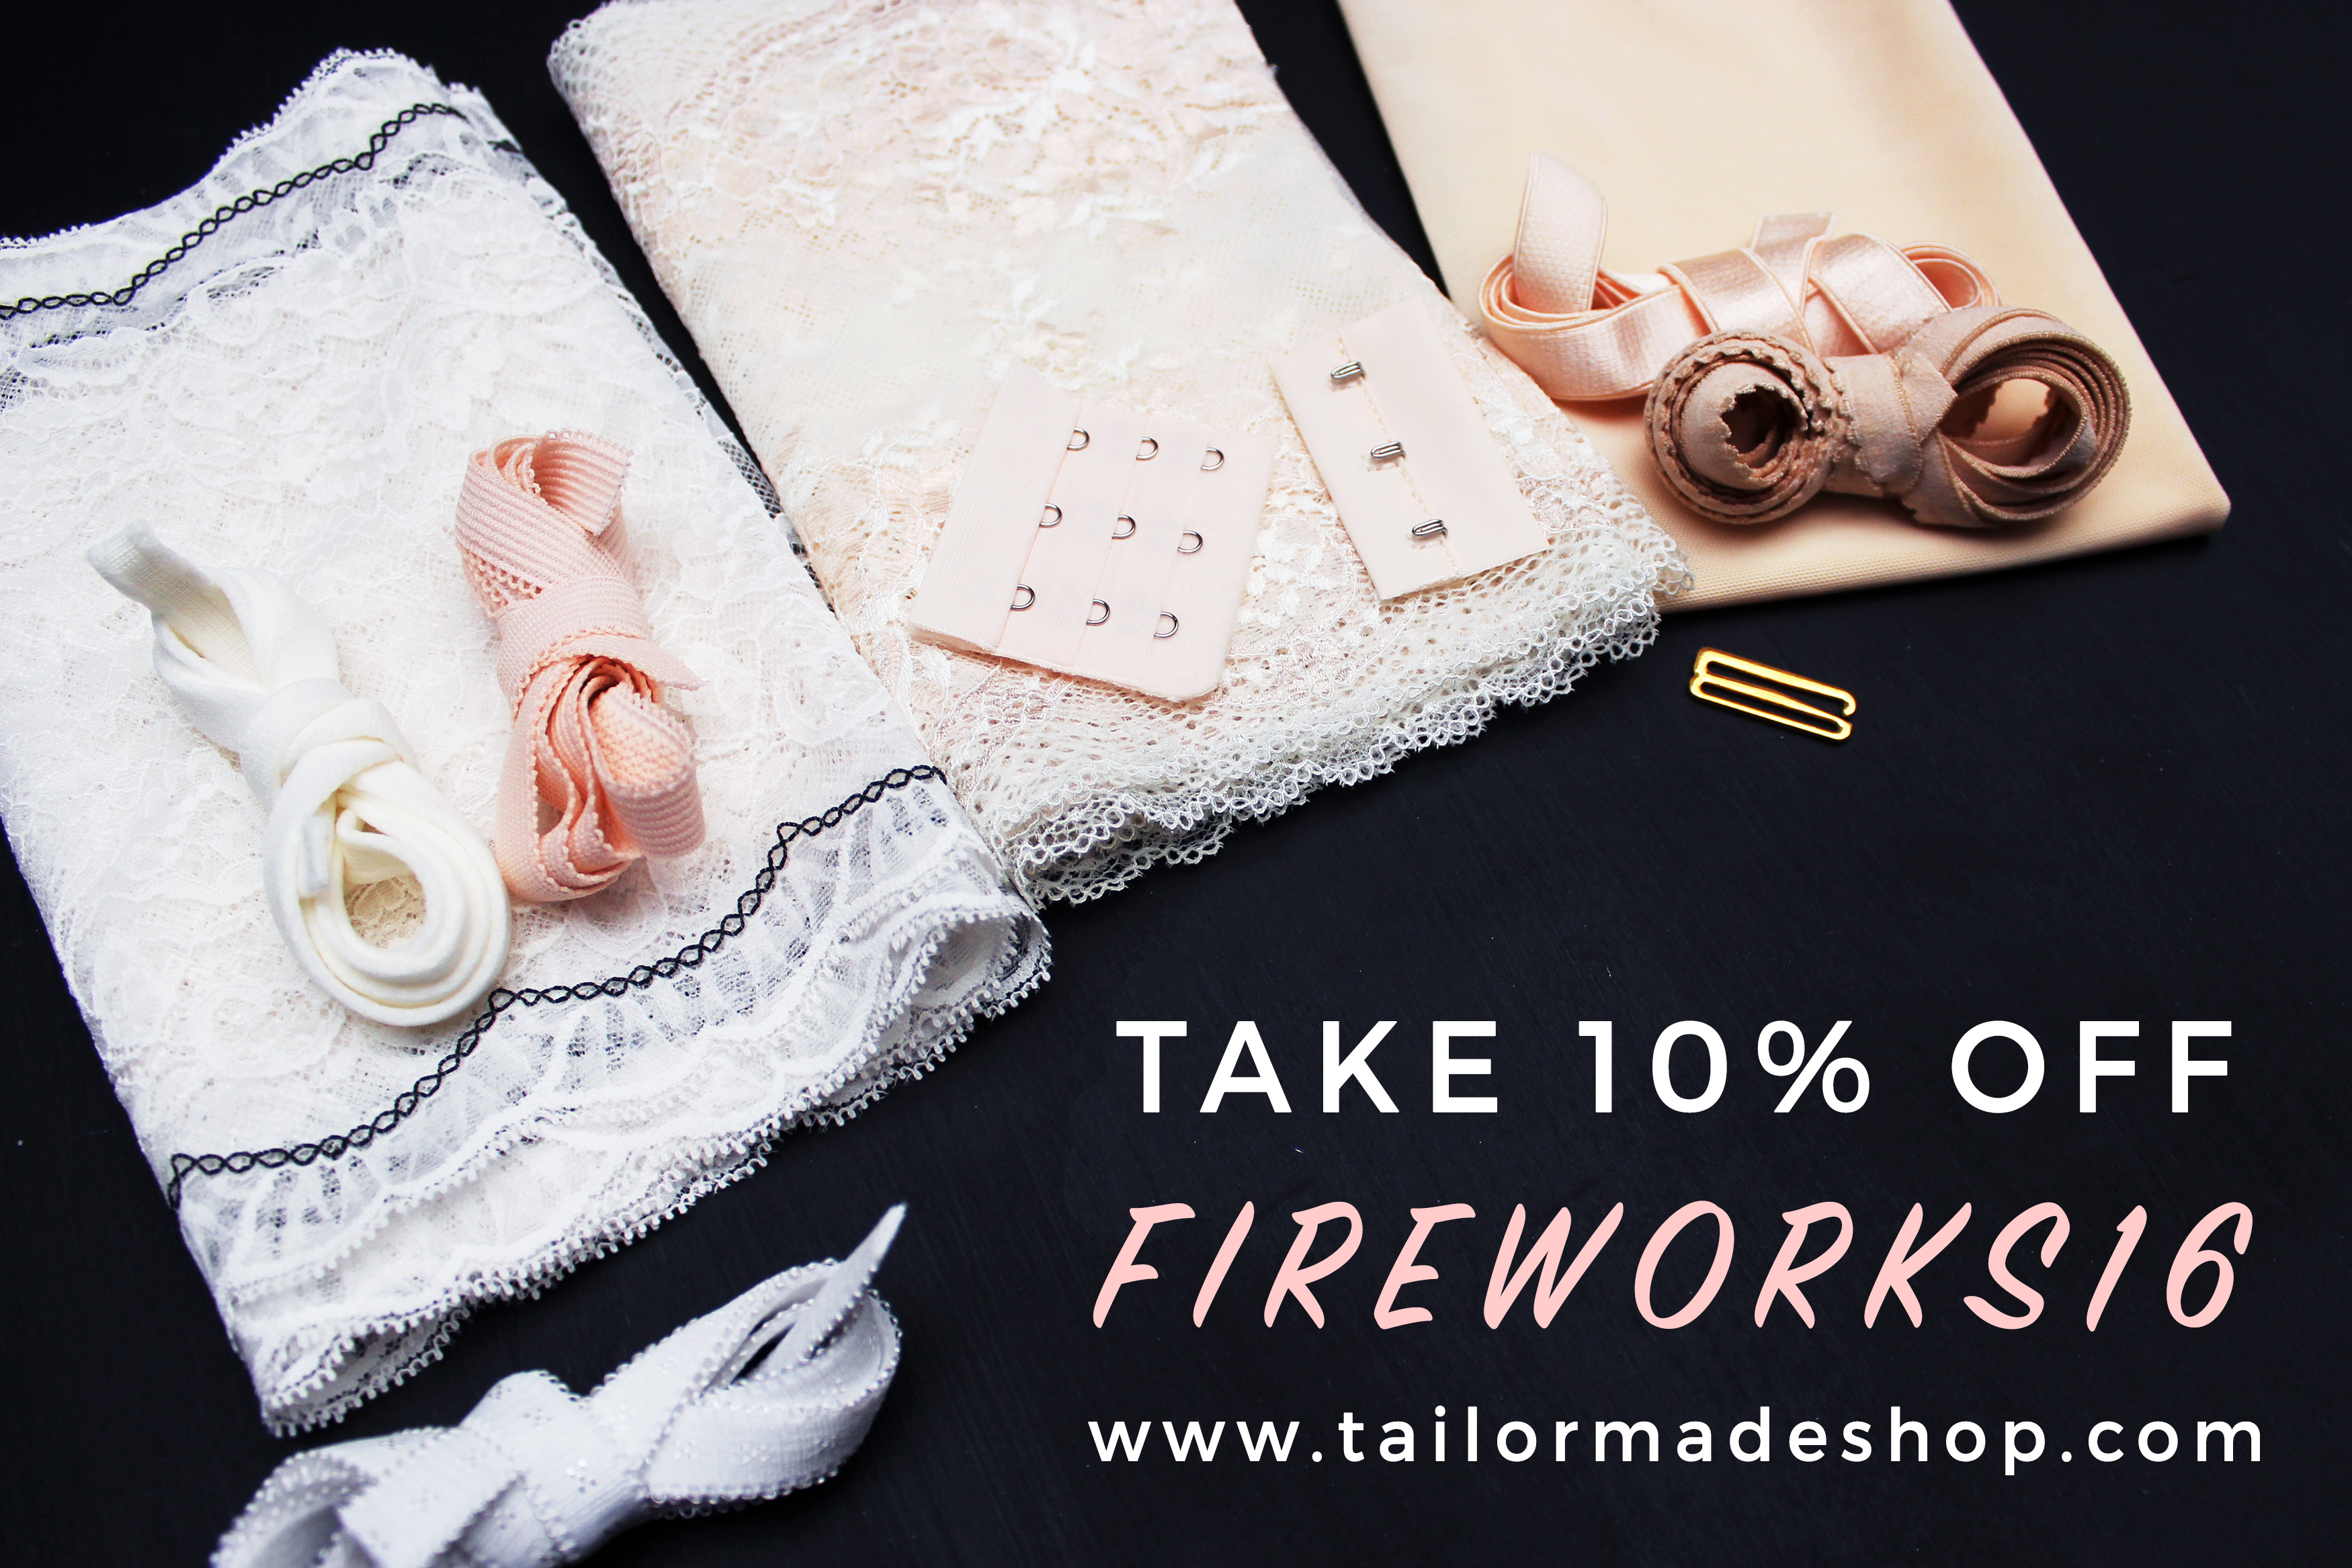 Tailor Made Shop Independence Day Sale